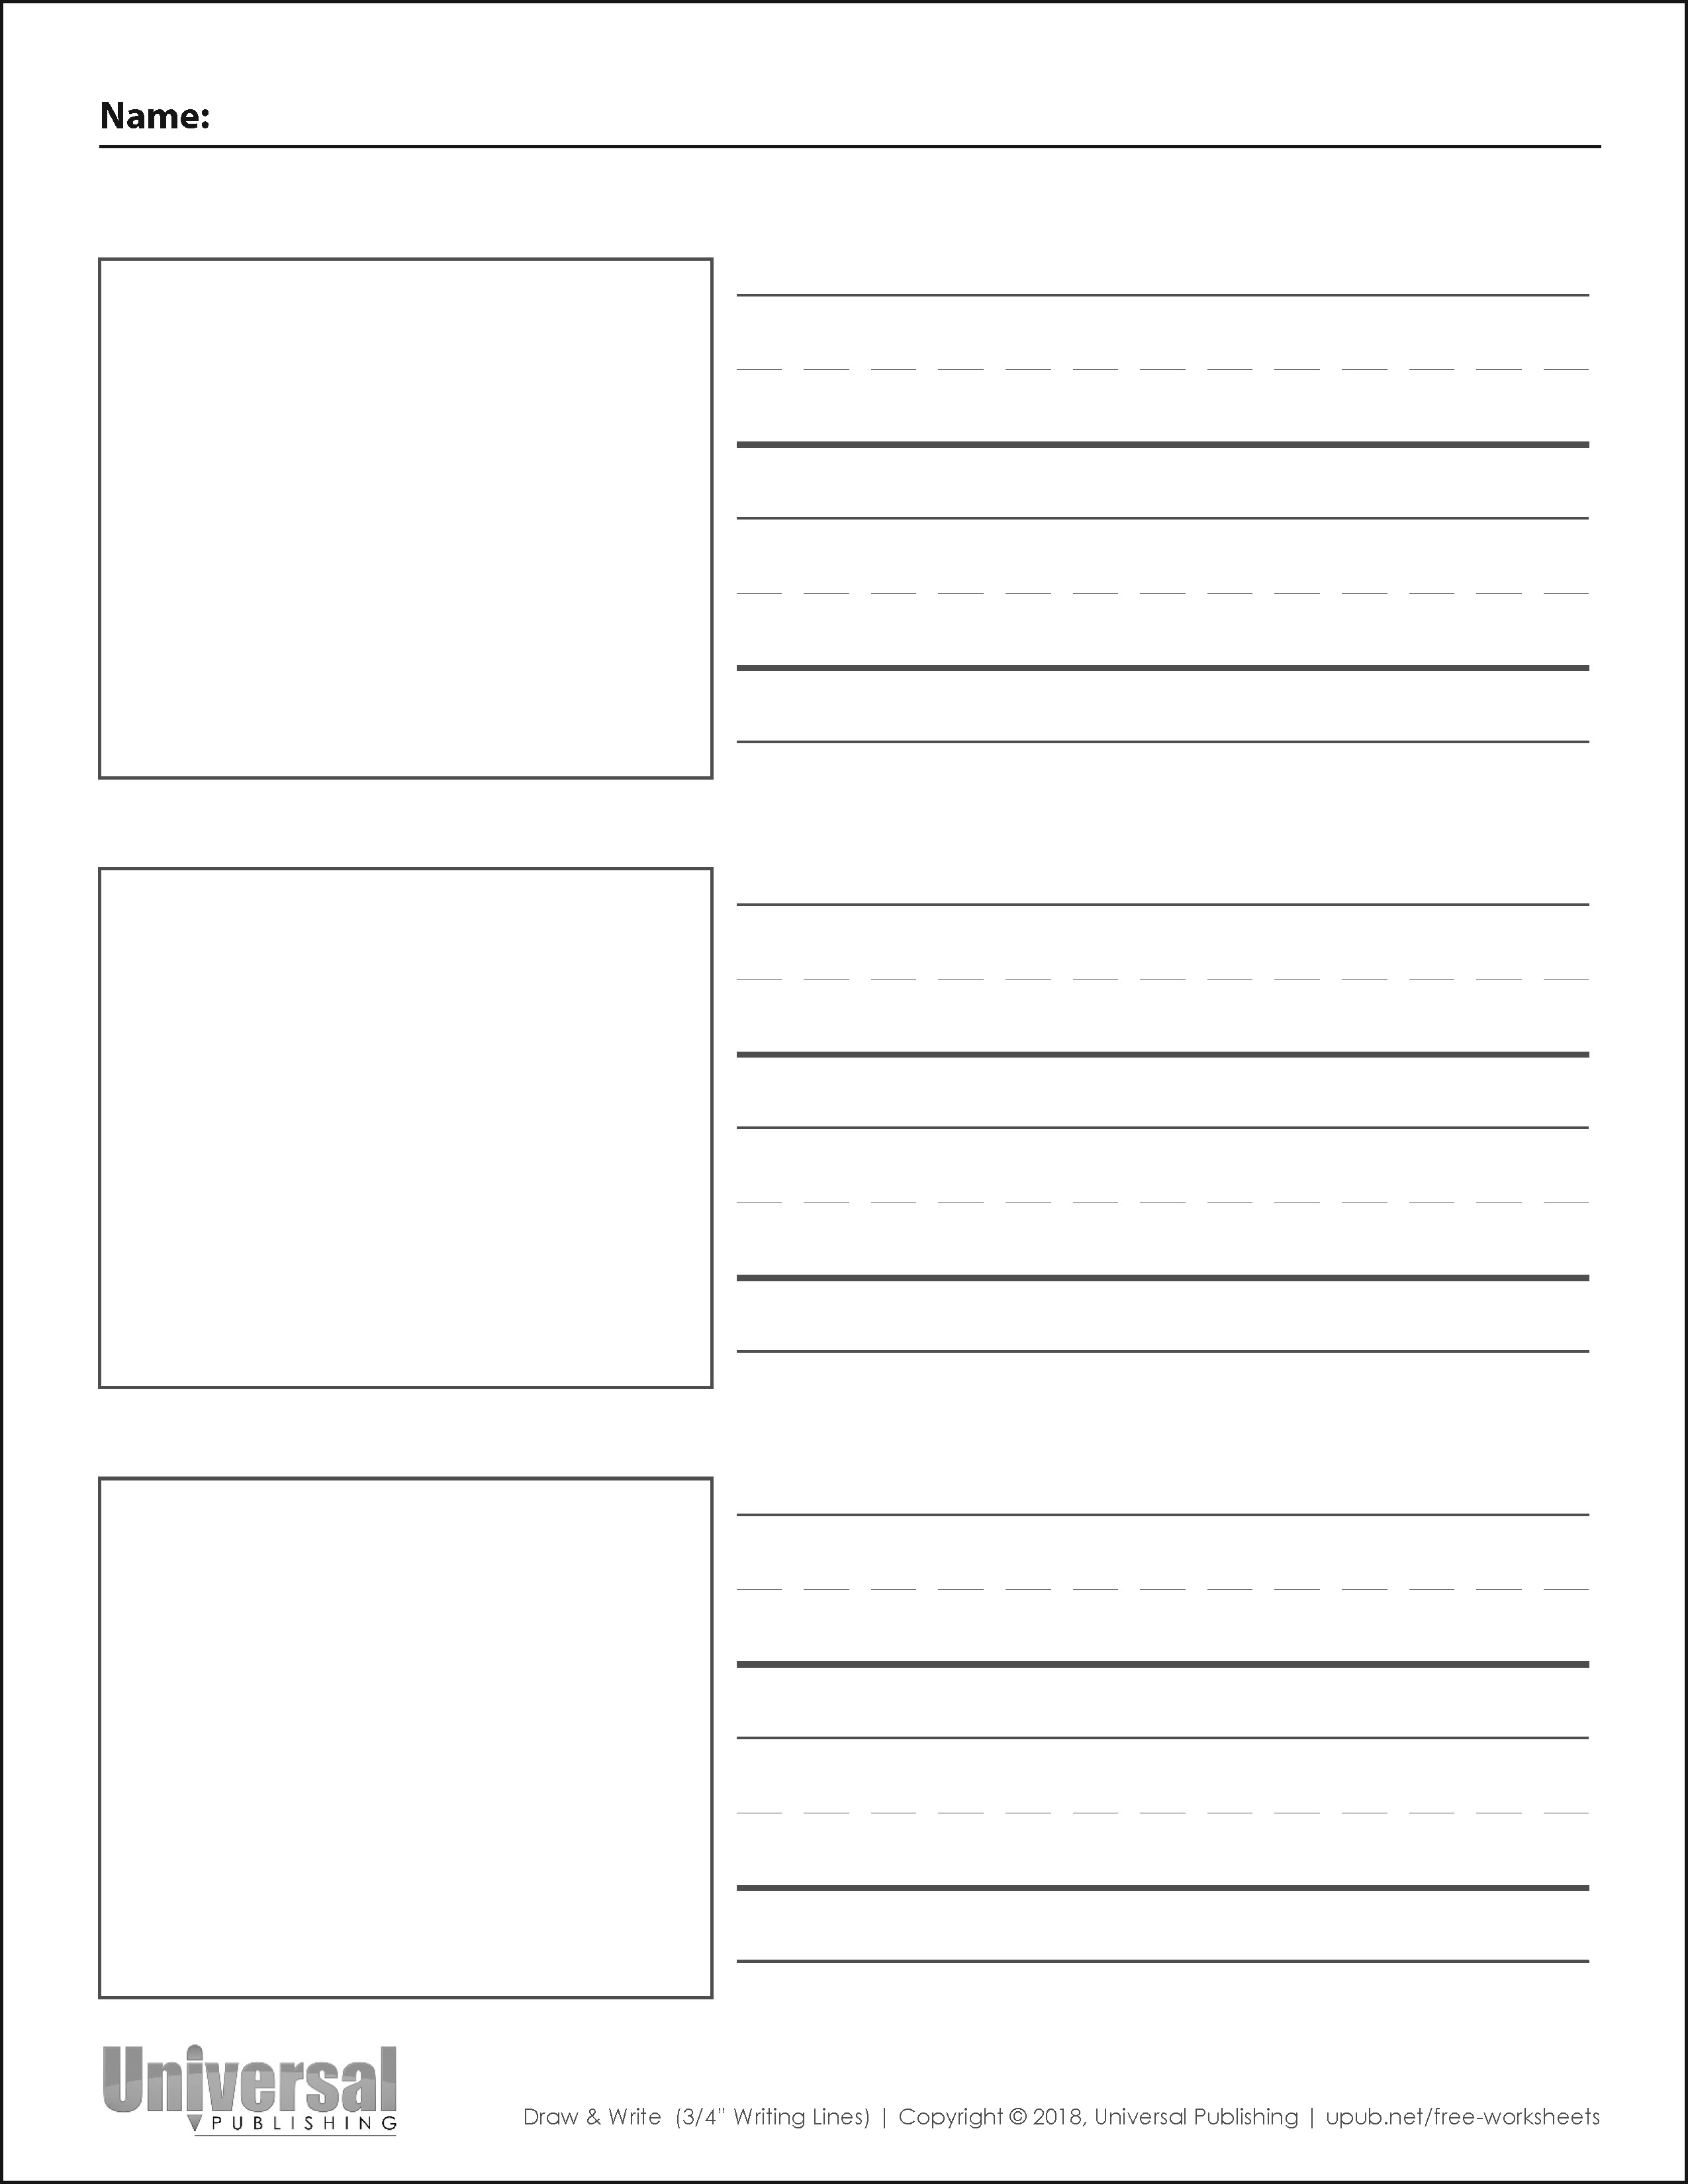 Draw and Write Vertical Three Quarter Inch Writing Lines Three Boxes